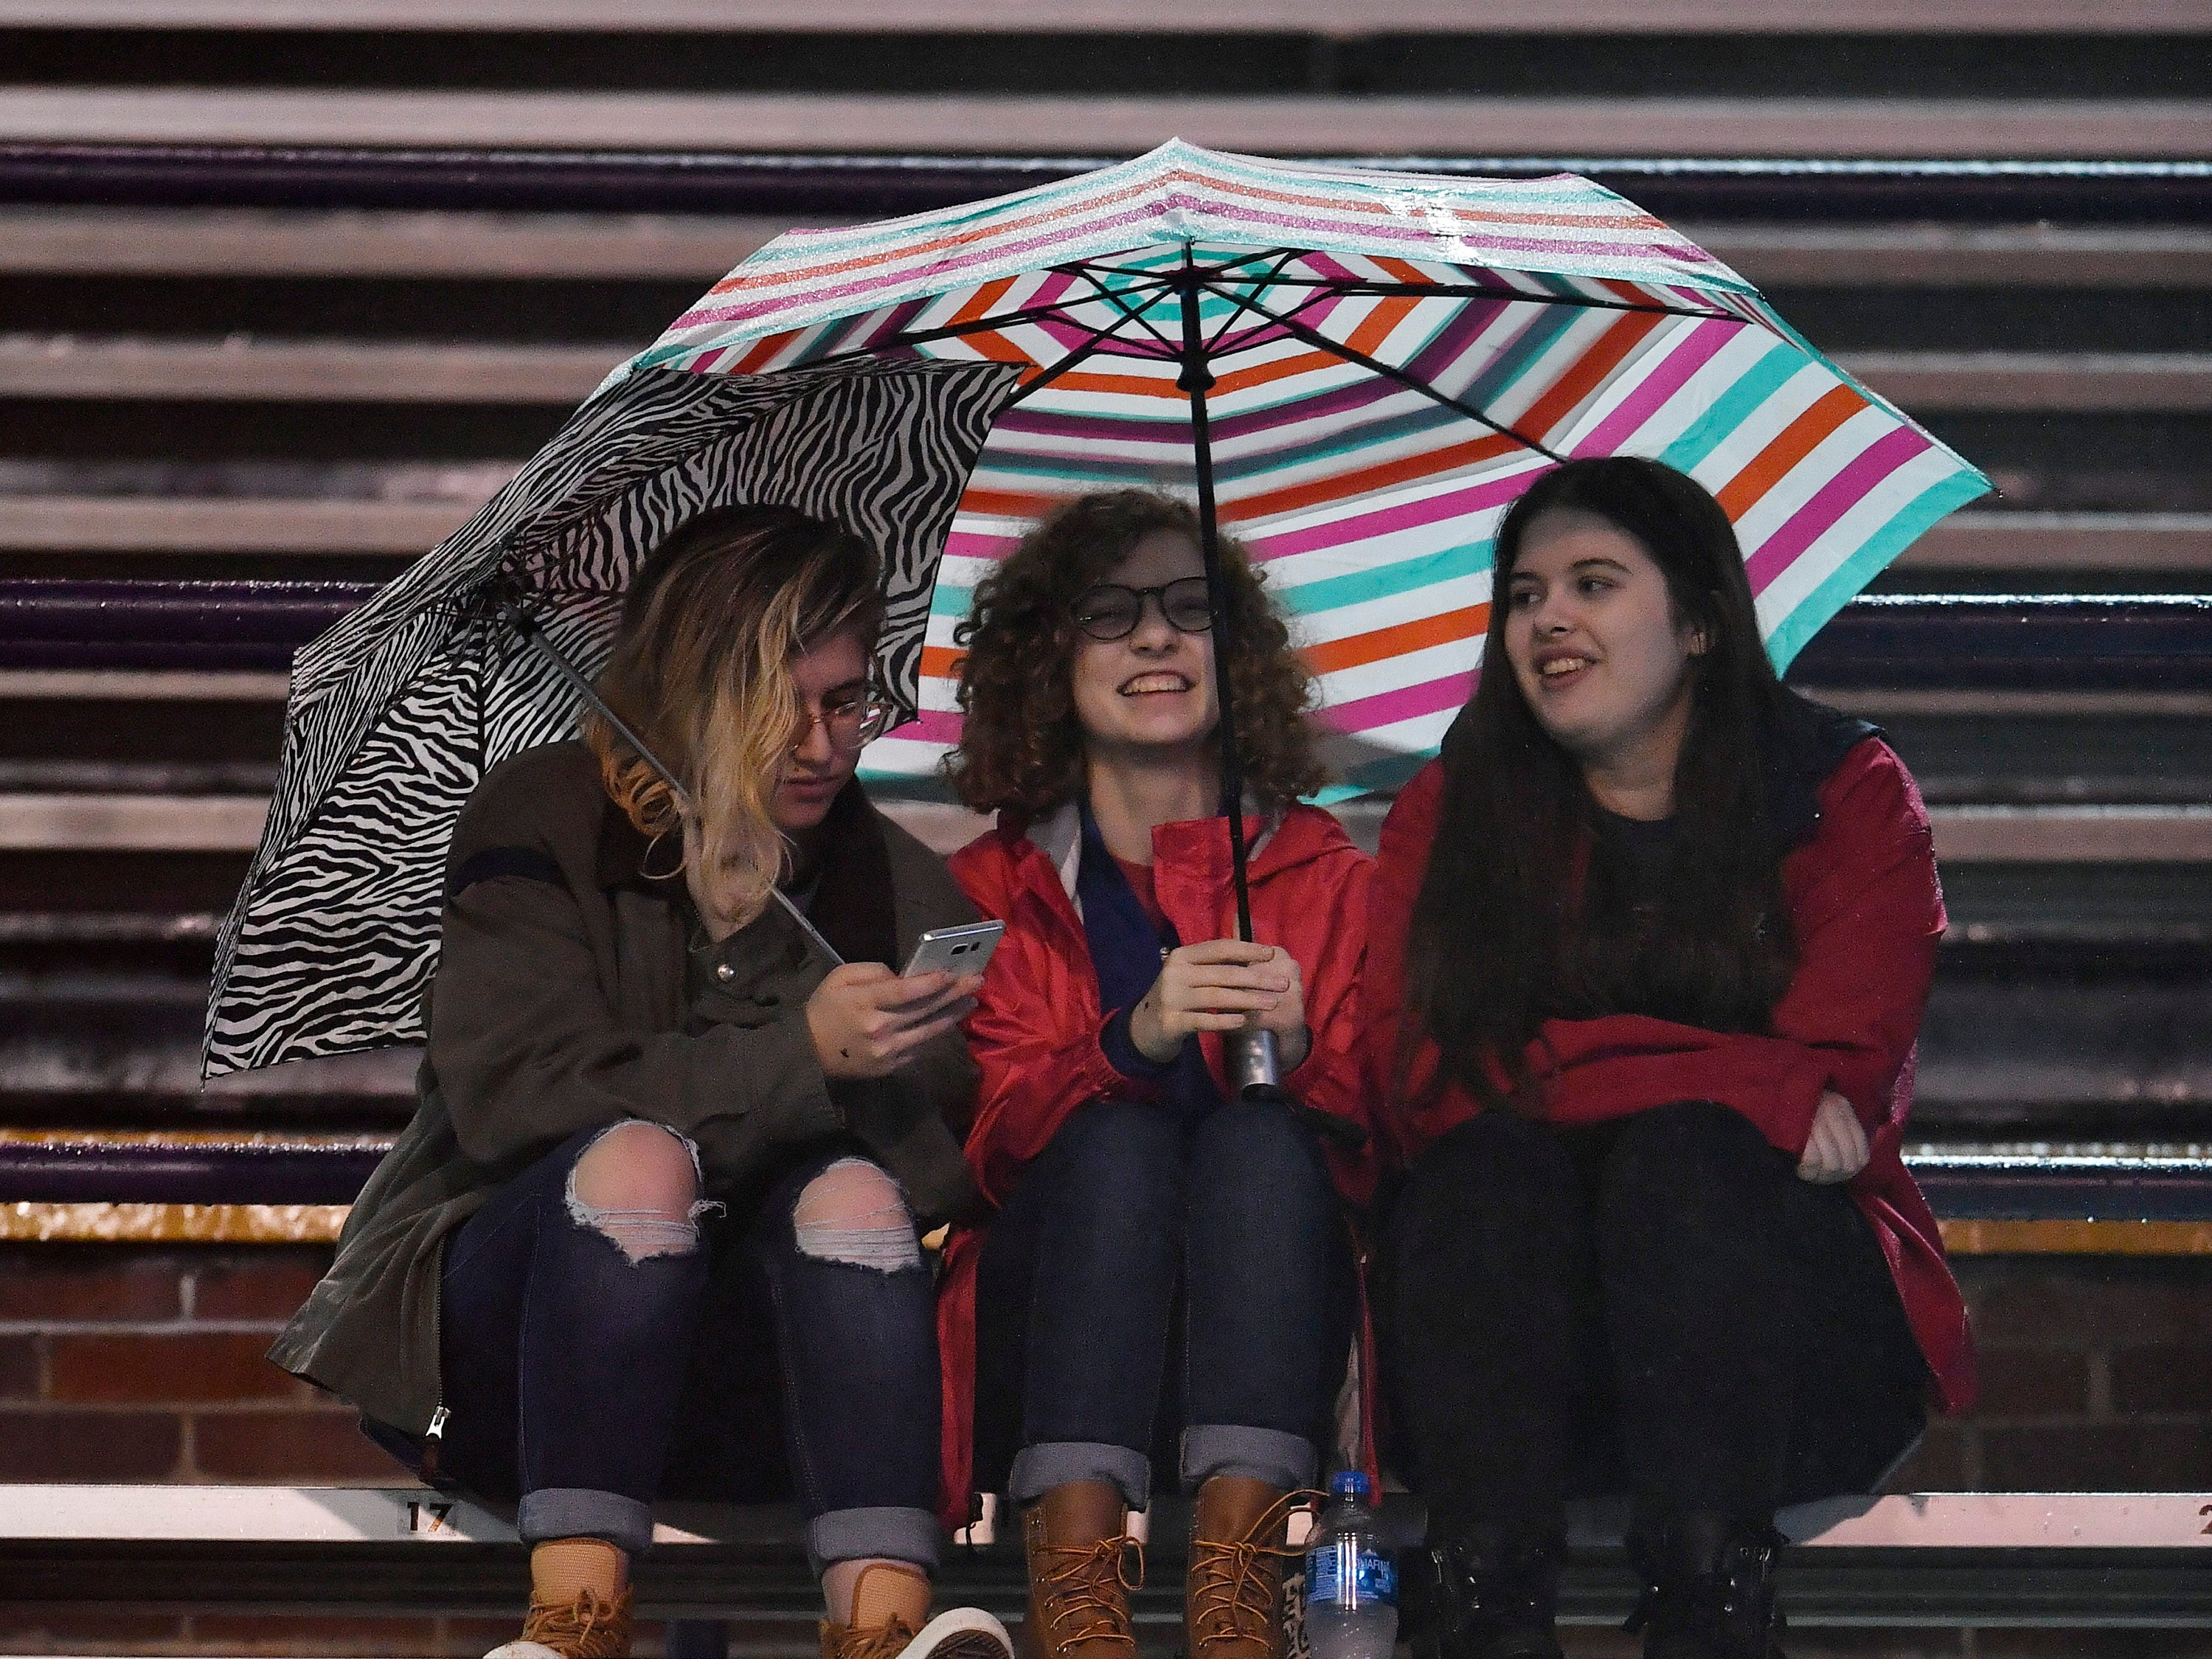 BA fans huddle under an umbrella in the second half at the Division II-AAA BlueCross Bowl state championship at Tennessee Tech's Tucker Stadium in Cookeville, Tenn., on Friday, Nov. 30, 2018.